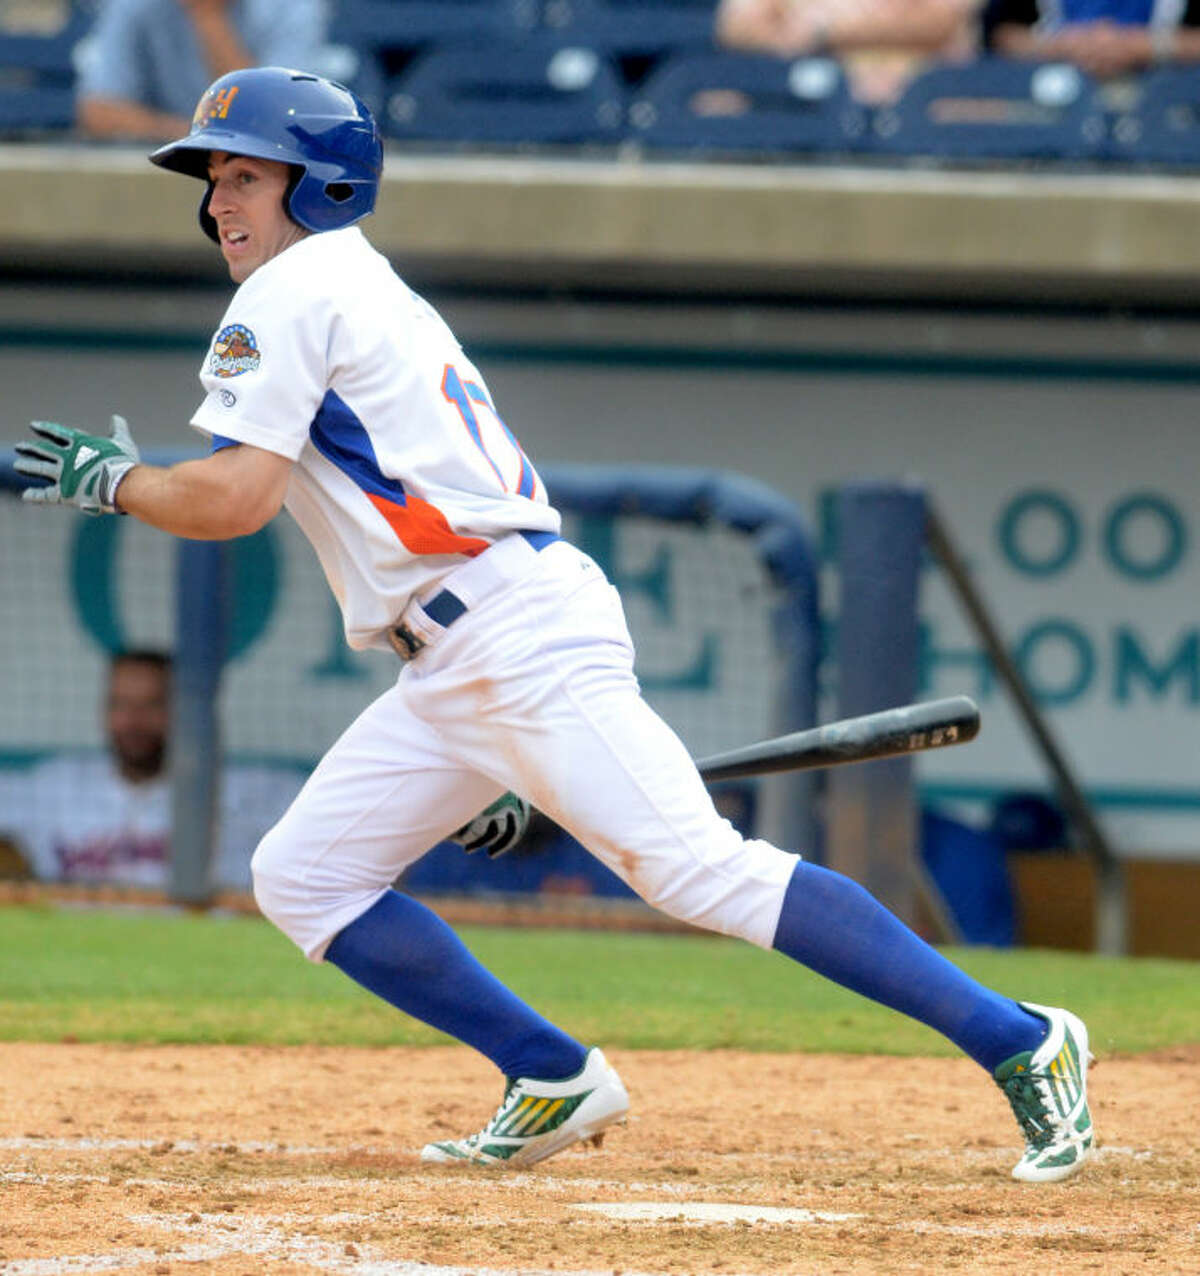 Rockhounds' Billy Burns puts the ball in play against the Frisco Rough Riders on Tuesday at Security Bank Ballpark. James Durbin/Reporter-Telegram